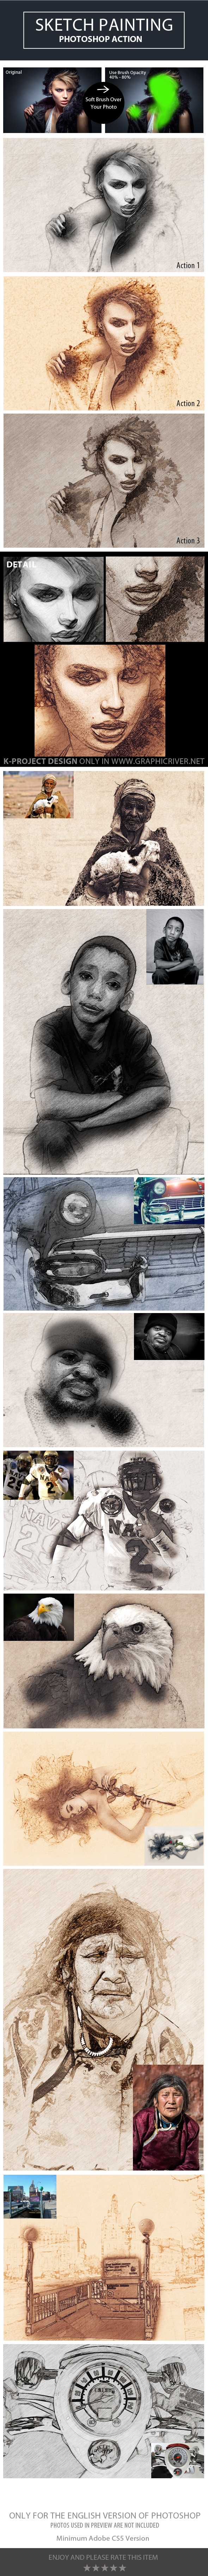 Sketch Painting Photoshop Action - Photo Effects Actions